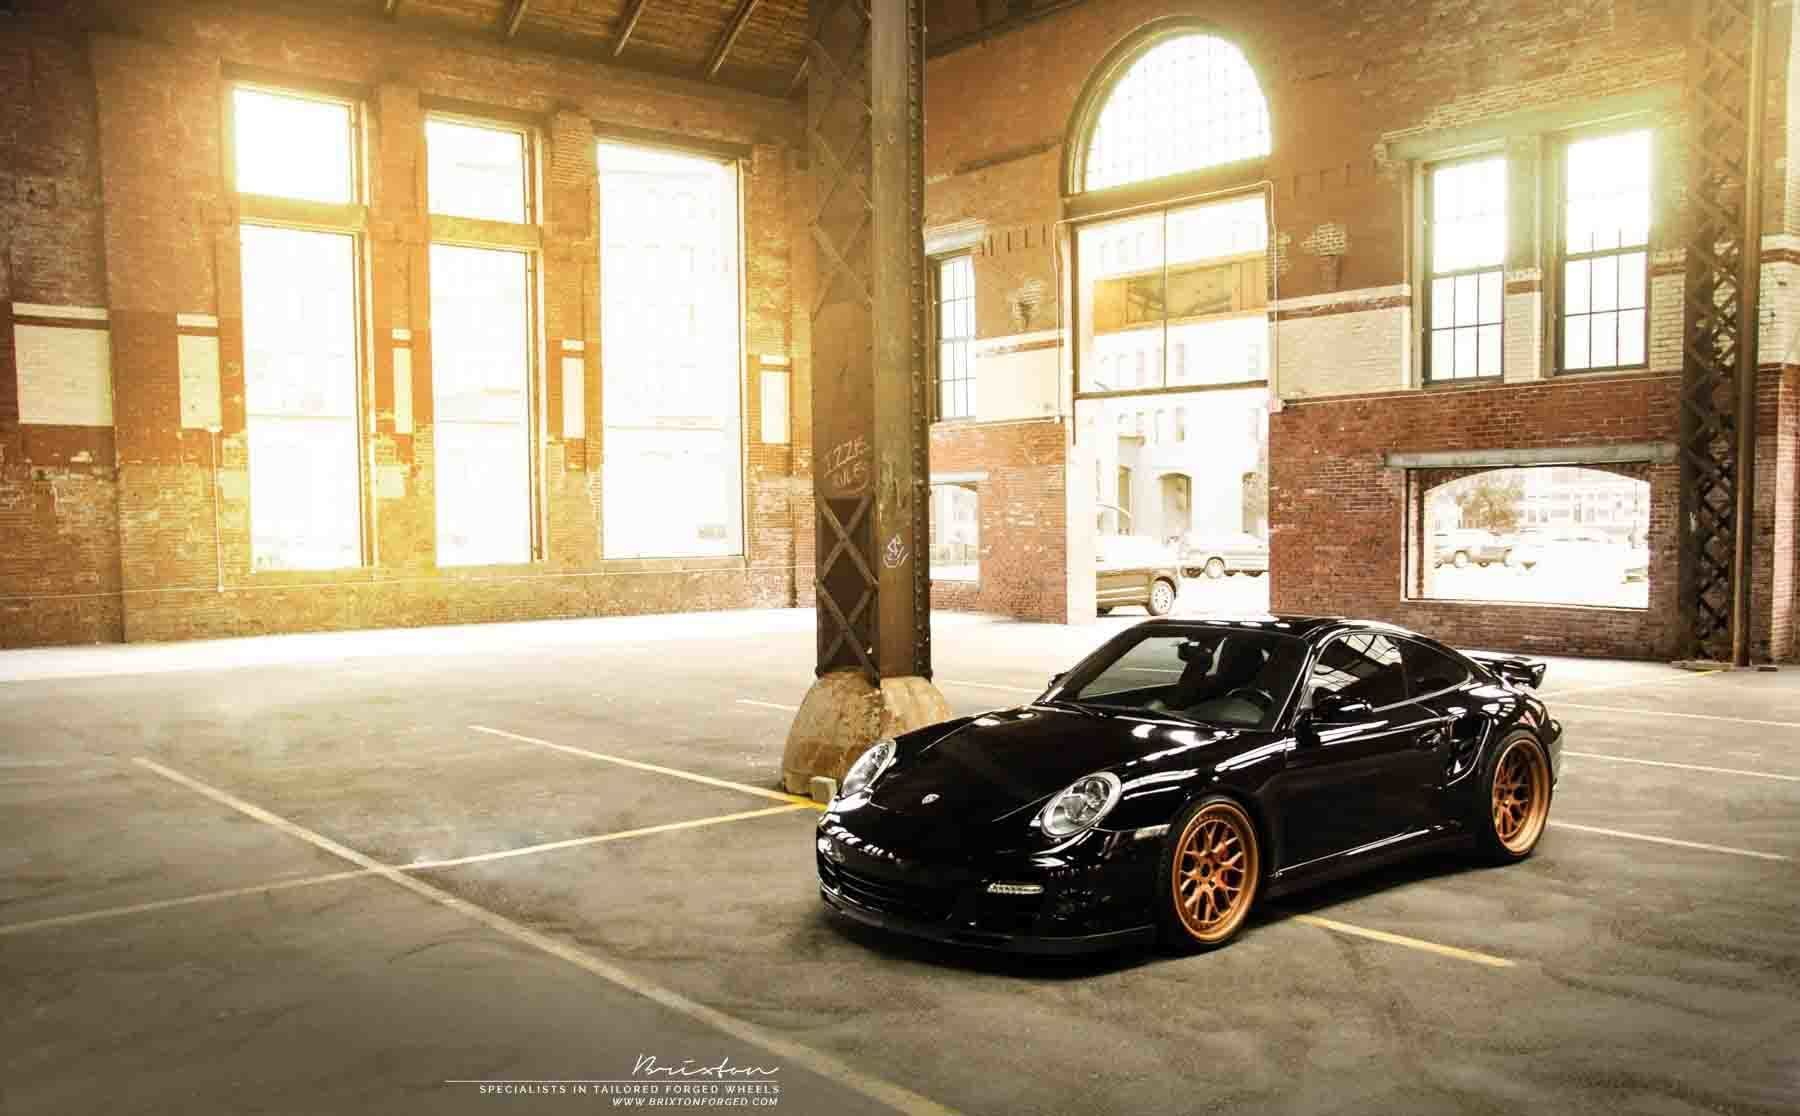 images-products-1-2691-232974979-black-porsche-997-turbo-brixton-forged-cm16-circuit-series-rose-gold-6-1800x1116.jpg